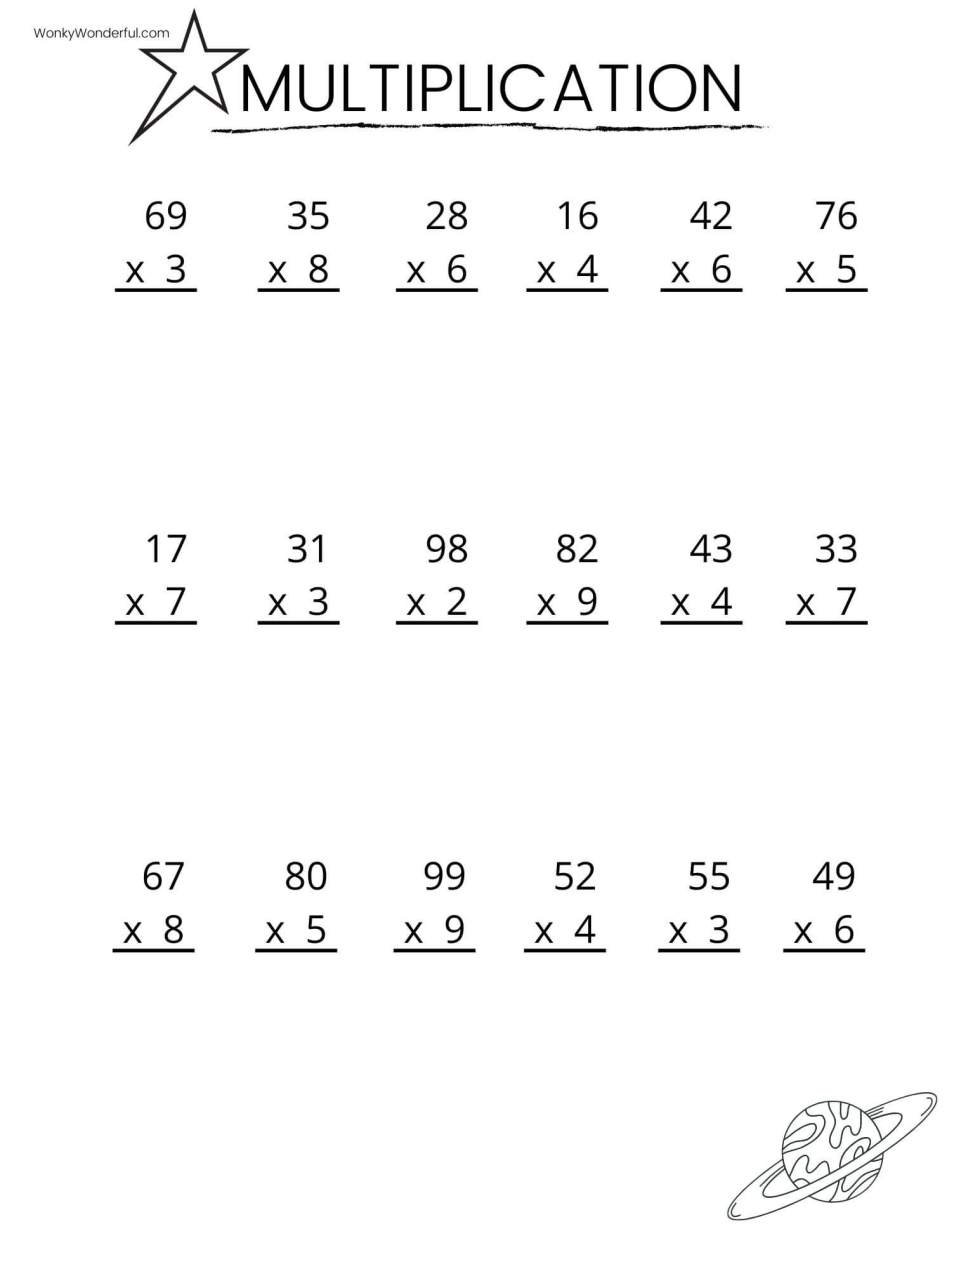 FREE PRINTABLE MULTIPLICATION WORKSHEETS + WonkyWonderful